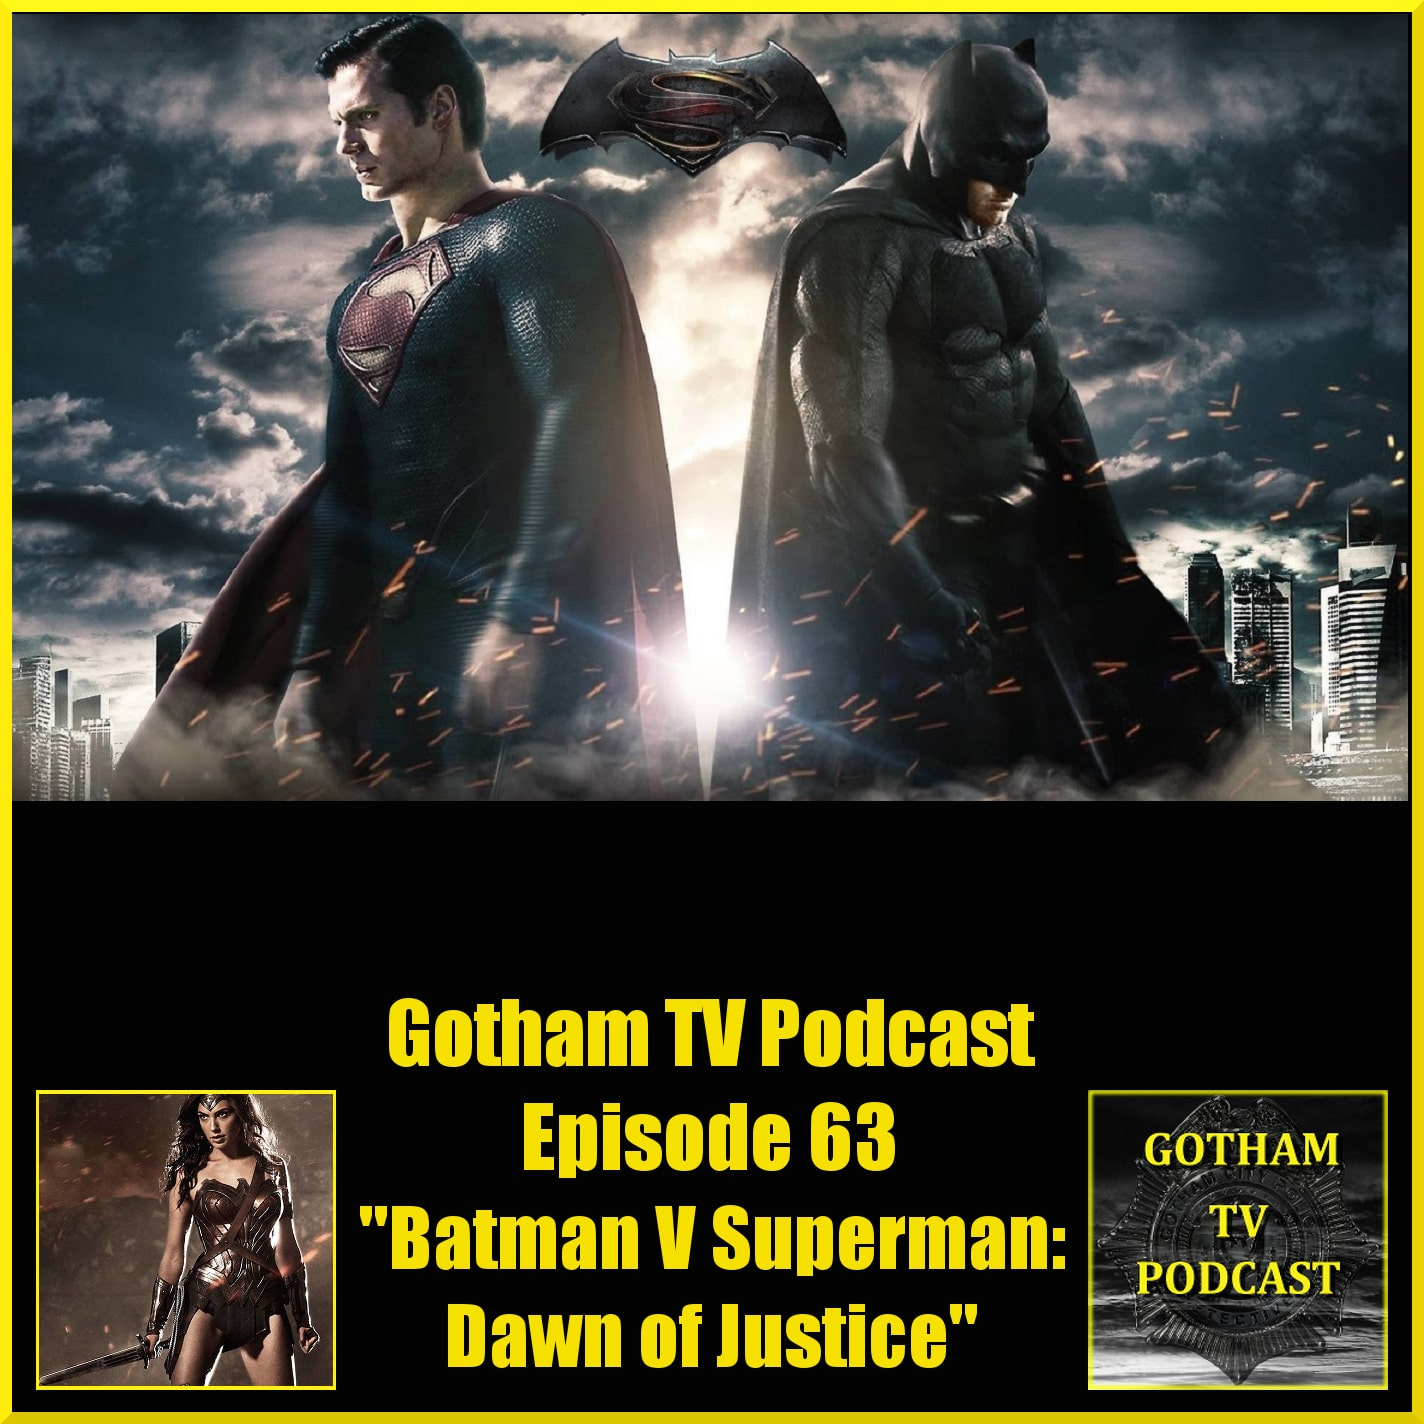 Batman V Superman: Dawn of Justice Review Podcast